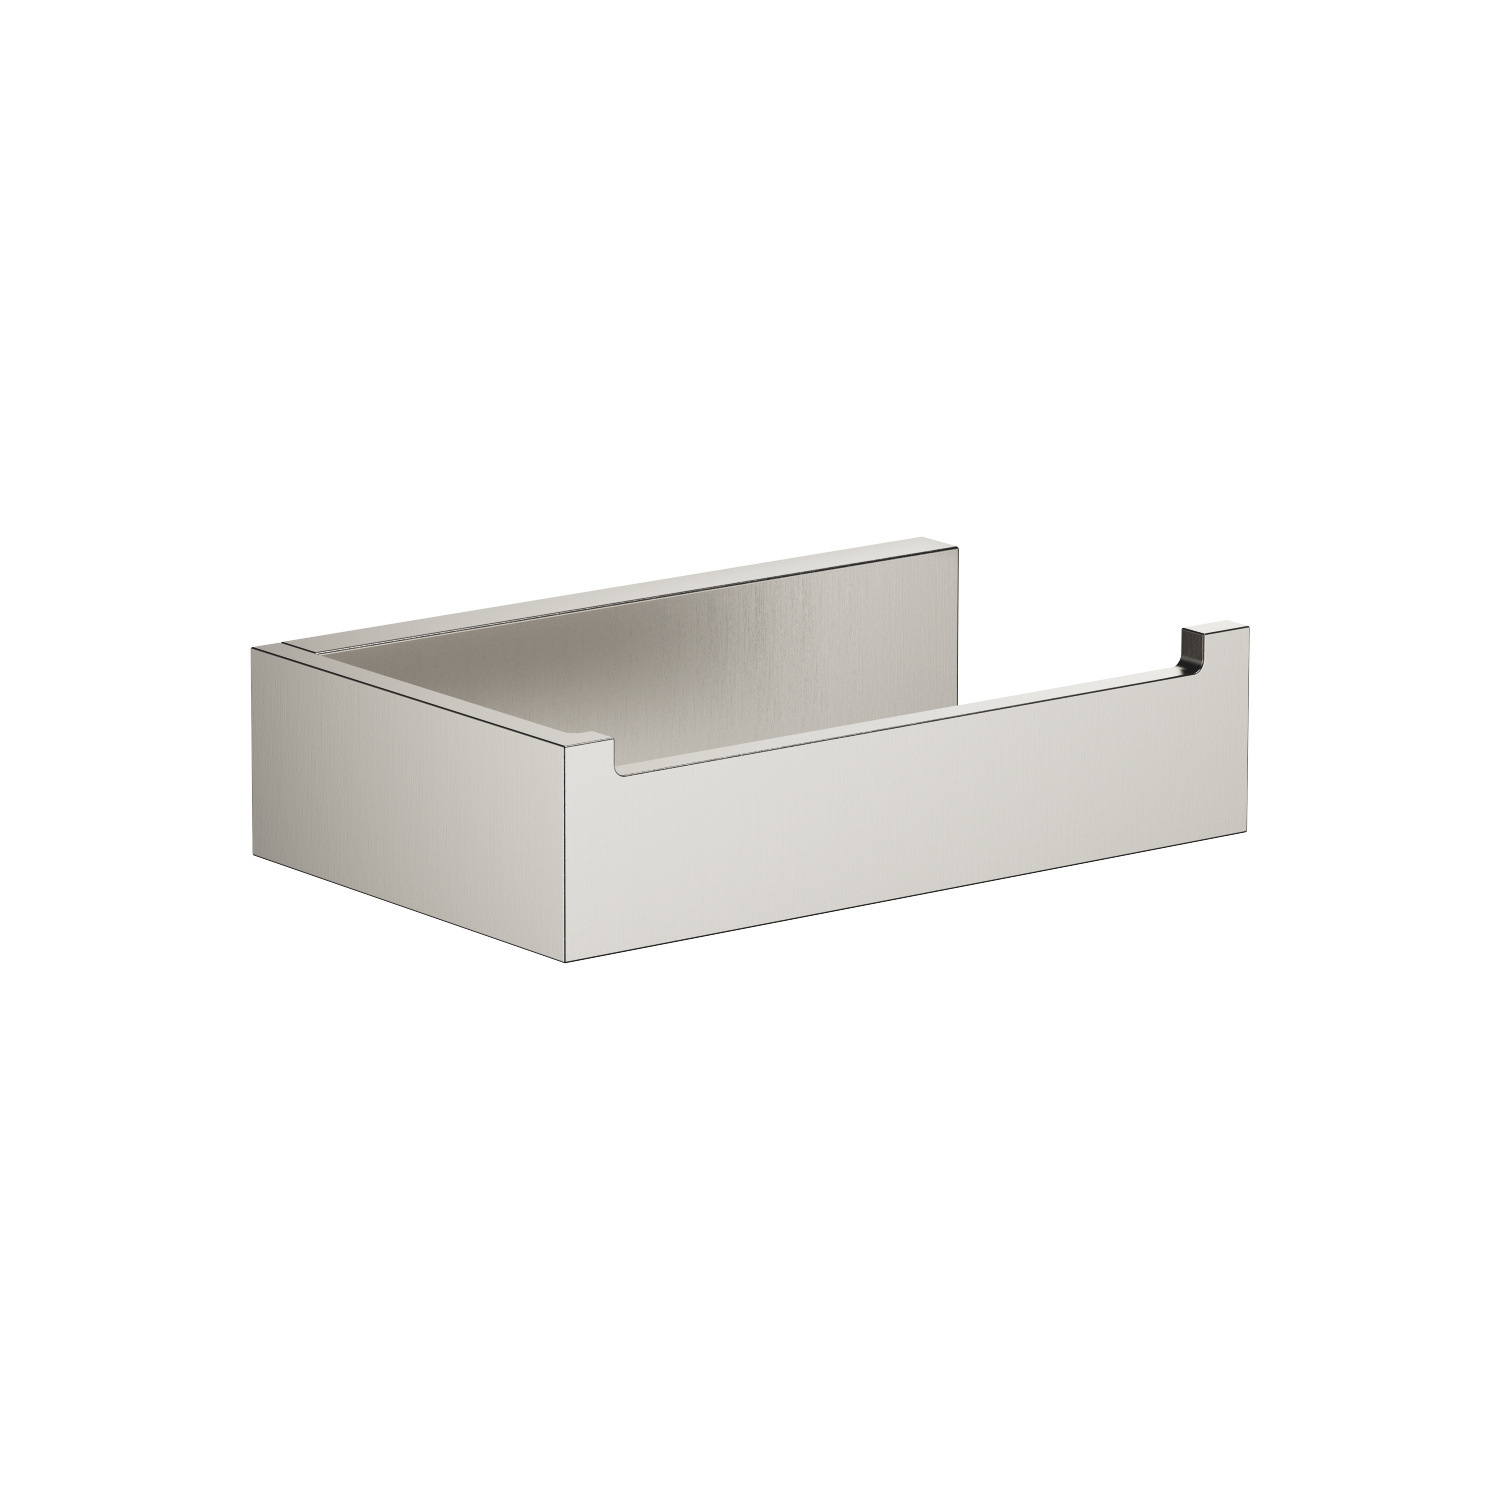 Tissue holder without cover - platinum matt